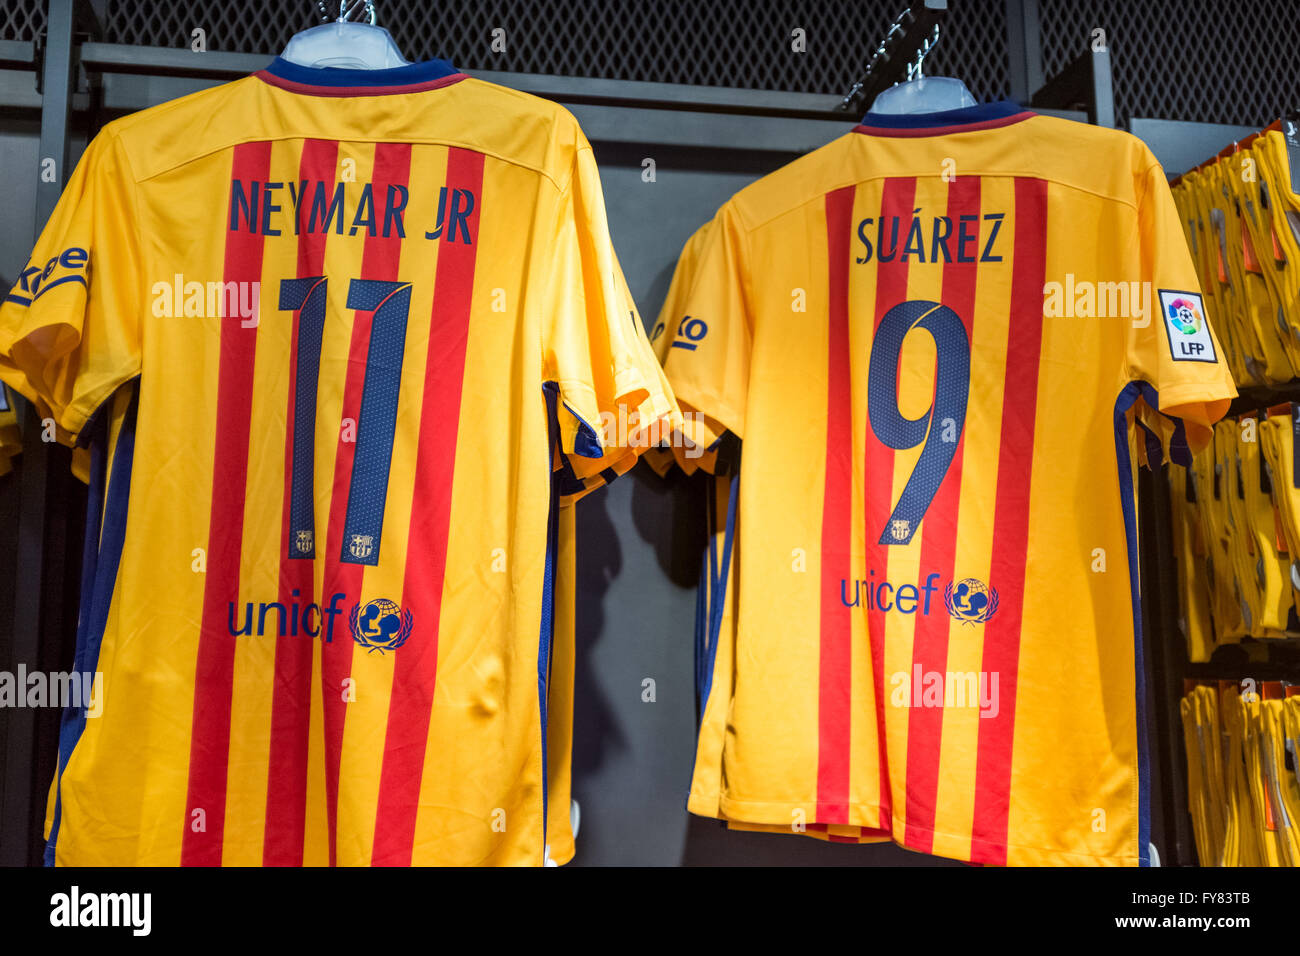 Neymar and Souarez t-shirts in Barcelona boutique store outside Camp Nou stadium - Stock Image